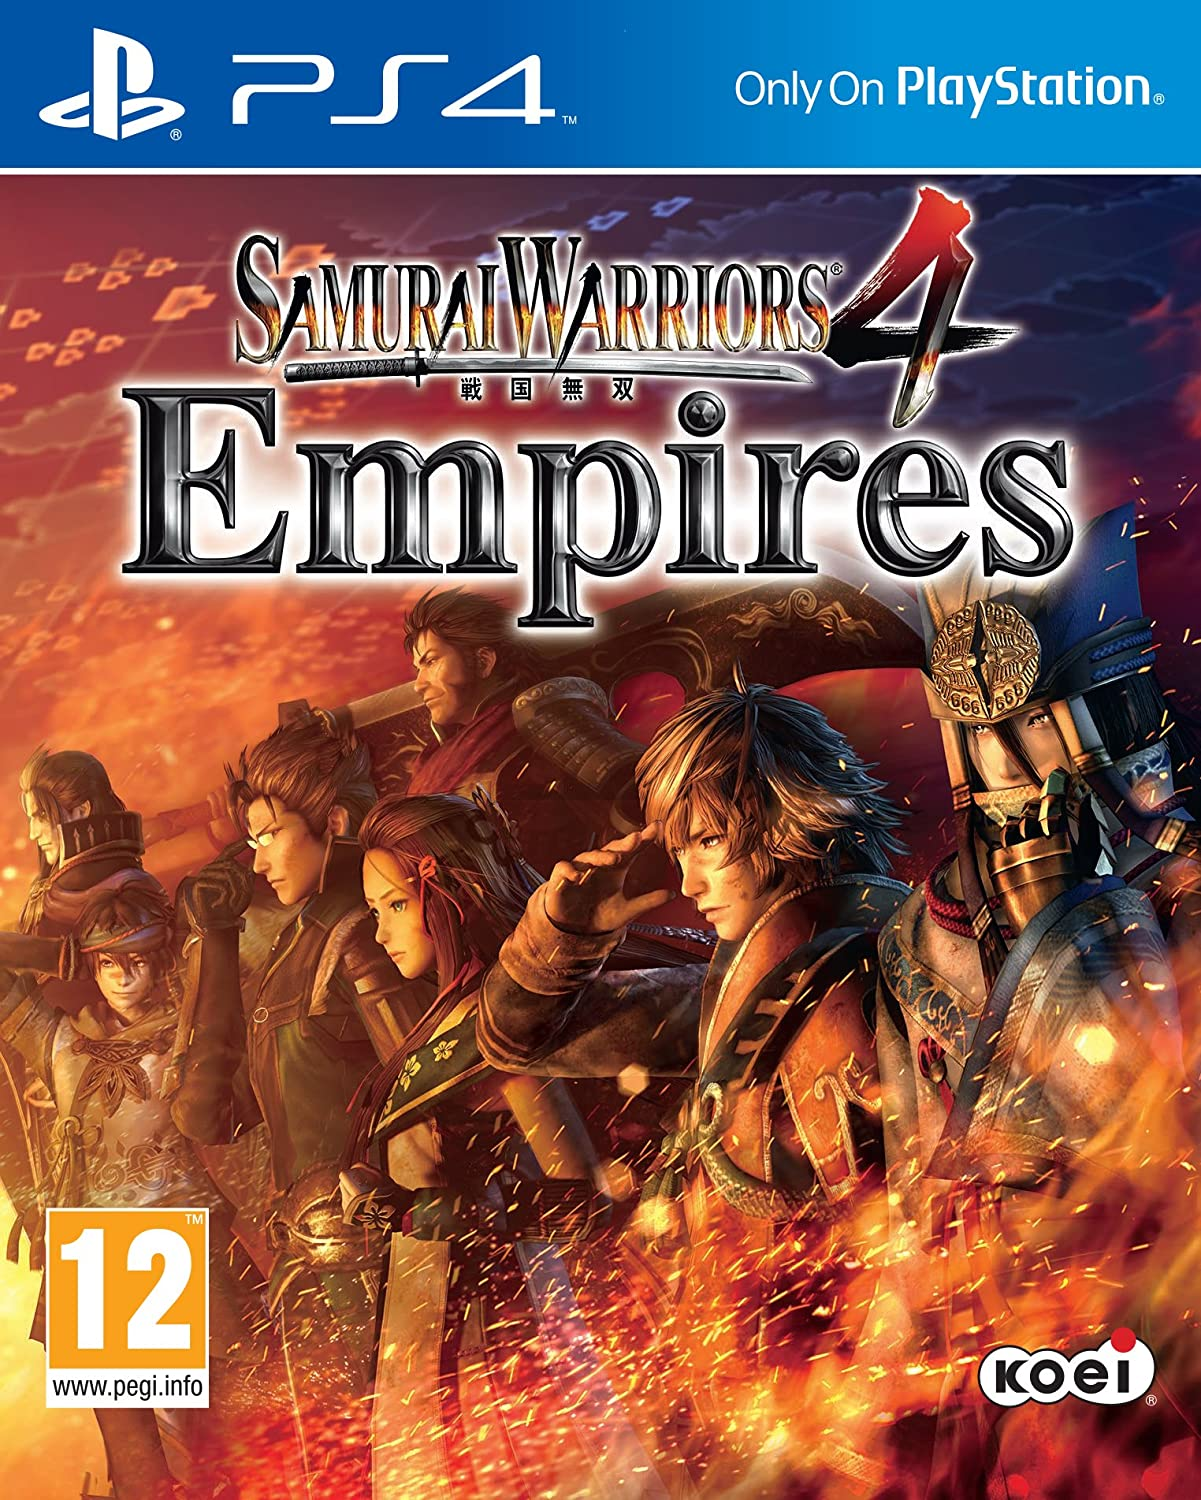 Dynasty Warriors 8 Empires Ps4 Pc Video Games Game Xtreme Legends Complete Edition Samurai 4